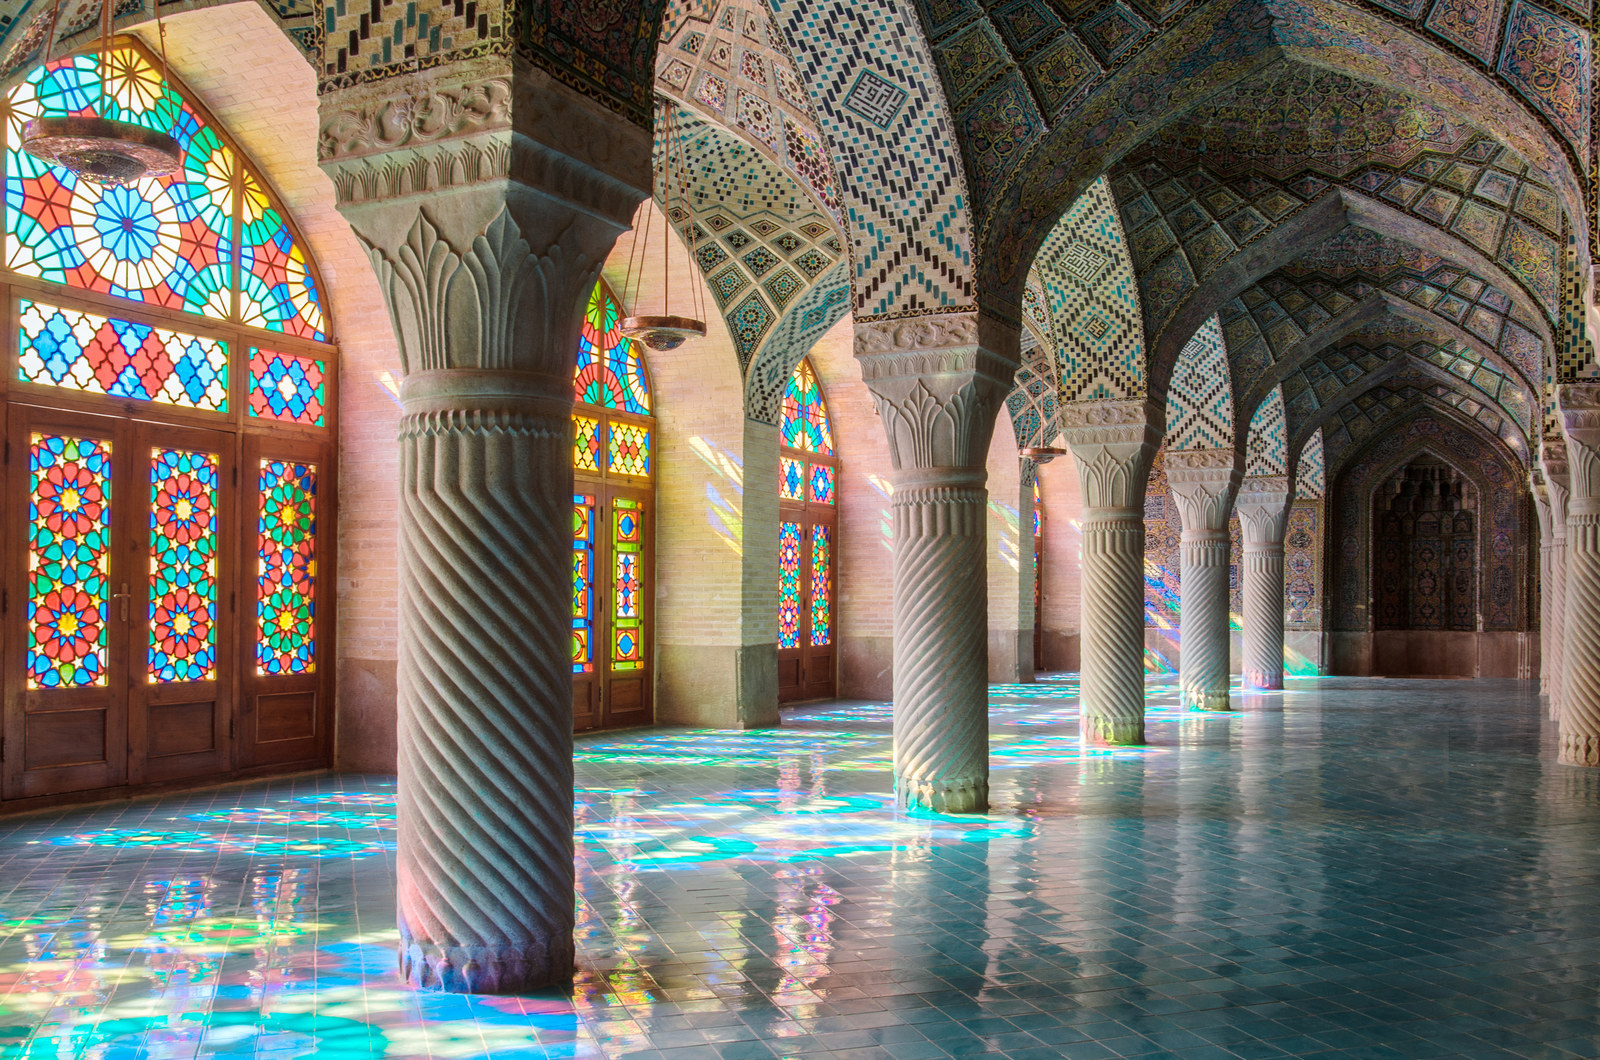 The mosque was built between 1876 and 1888 and is one of a handful of mosques in the world with stained glass windows.